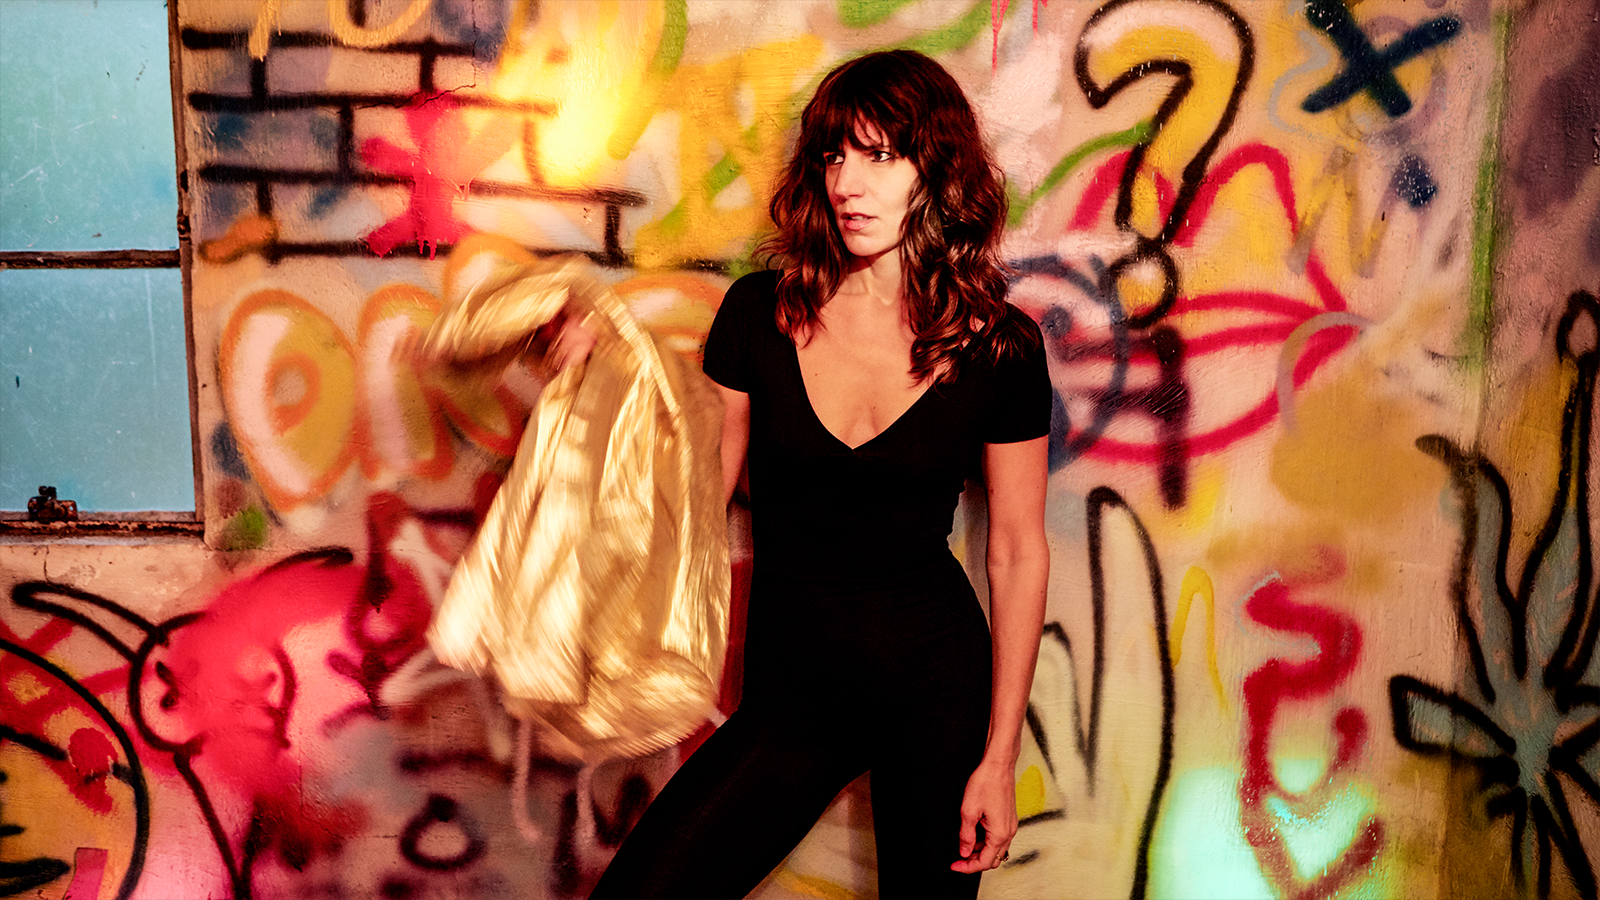 [Eleanor Friedberger] Photo courtesy of artist